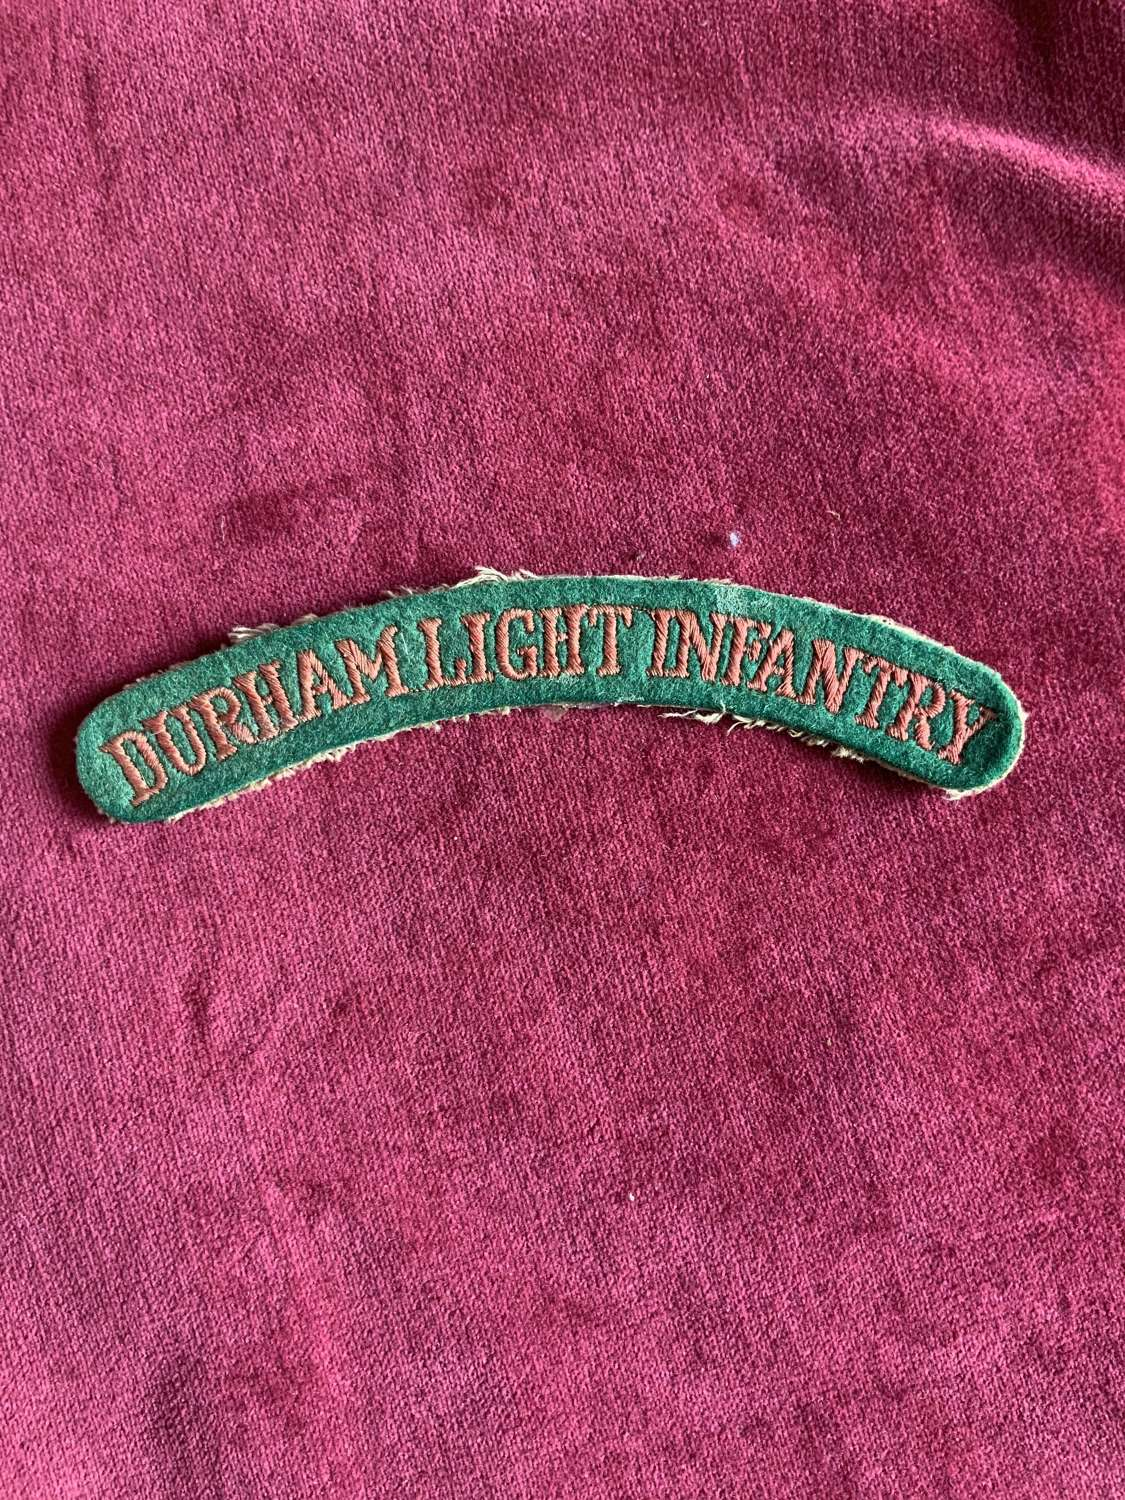 Durham Light Infantry, Pink On Green Early Shoulder Title